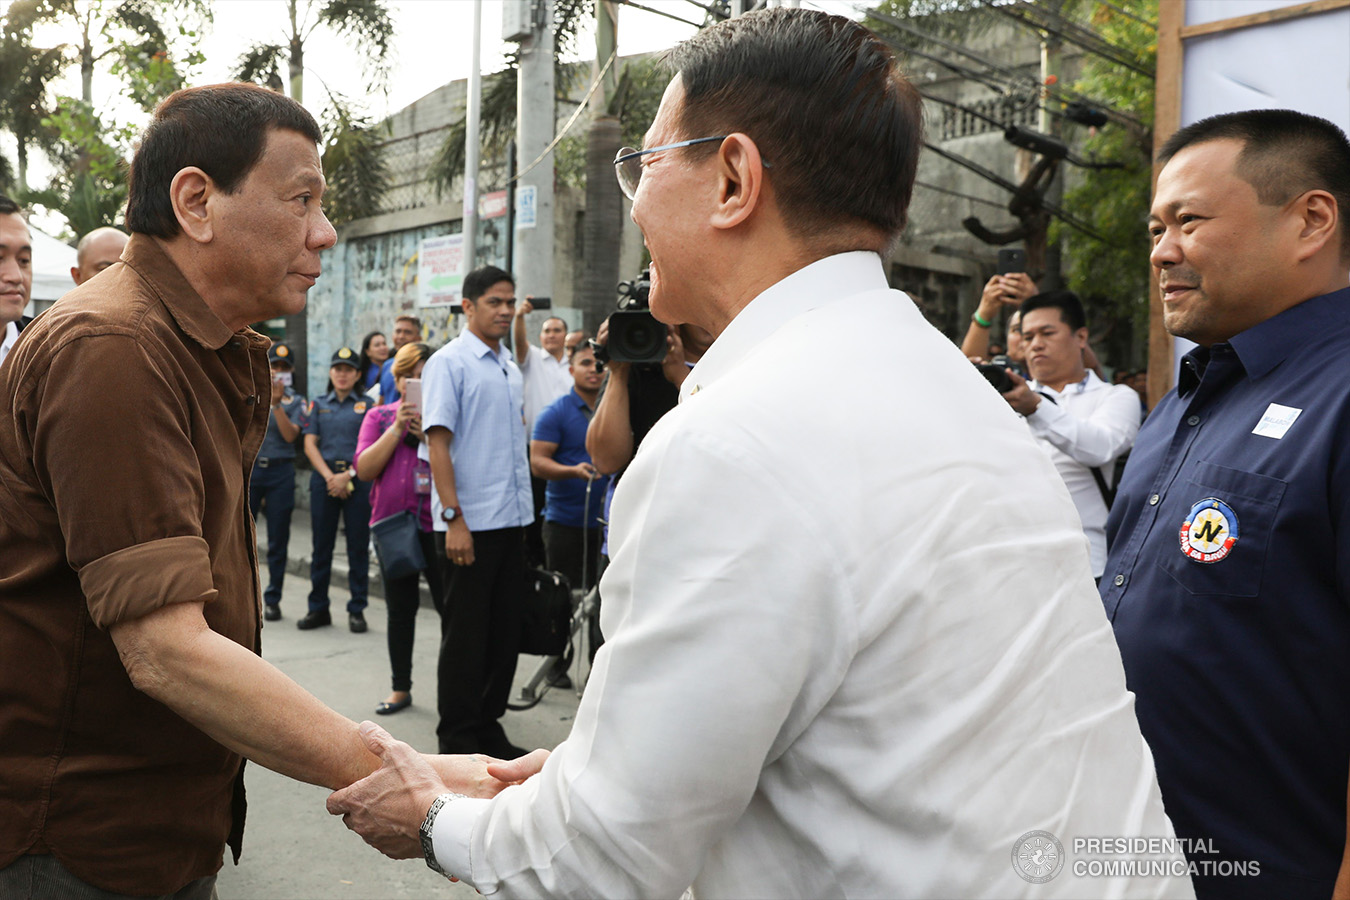 President Rodrigo Roa Duterte is greeted by Health Secretary Francisco Duque III upon his arrival at the construction site of the San Lorenzo Ruiz General Hospital (SLRGH) in Malabon City where he led the groundbreaking ceremony on January 29, 2019. Also in the photo is Senator Joseph Victor Ejercito. TOTO LOZANO/PRESIDENTIAL PHOTO